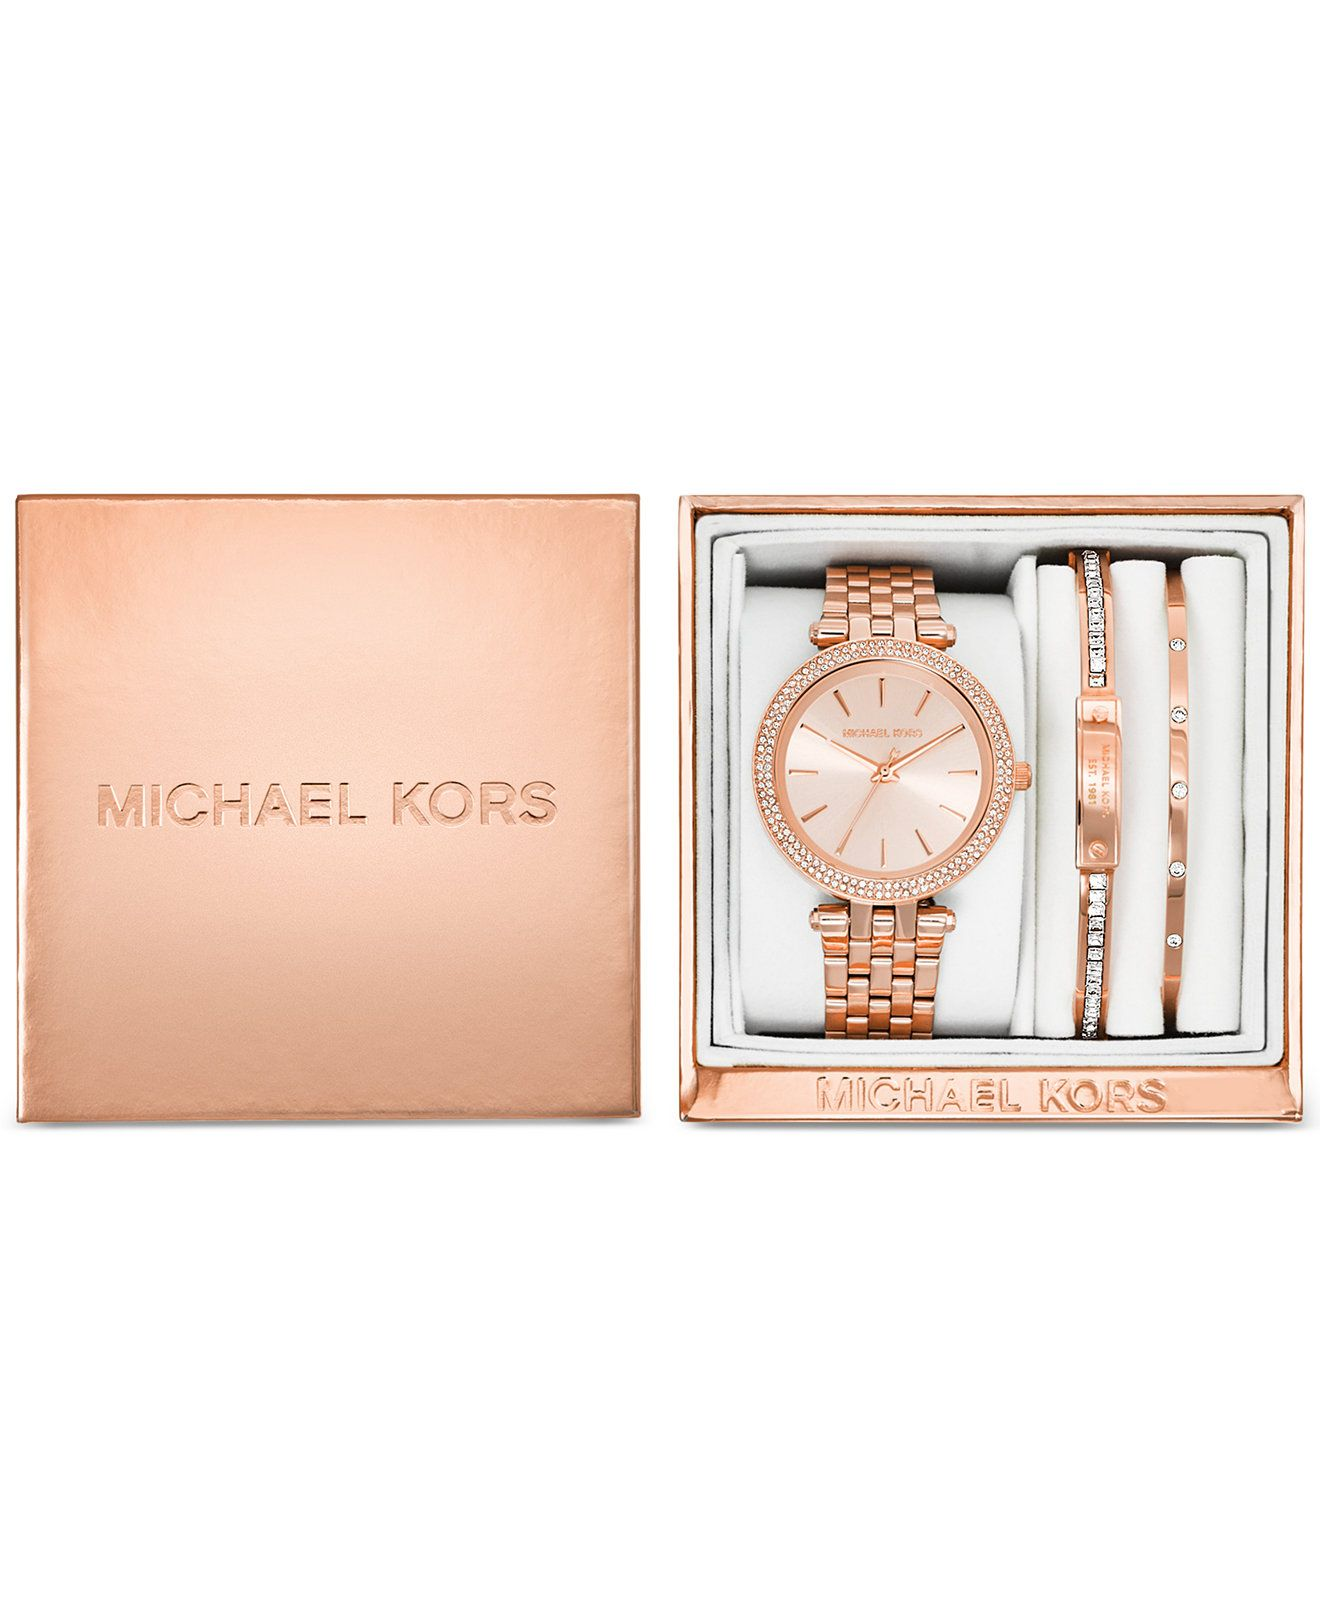 23a3afcafc6 Michael Kors Women s Mini Darci Rose Gold-Tone Stainless Steel Bracelet  Watch Gift Set 33mm